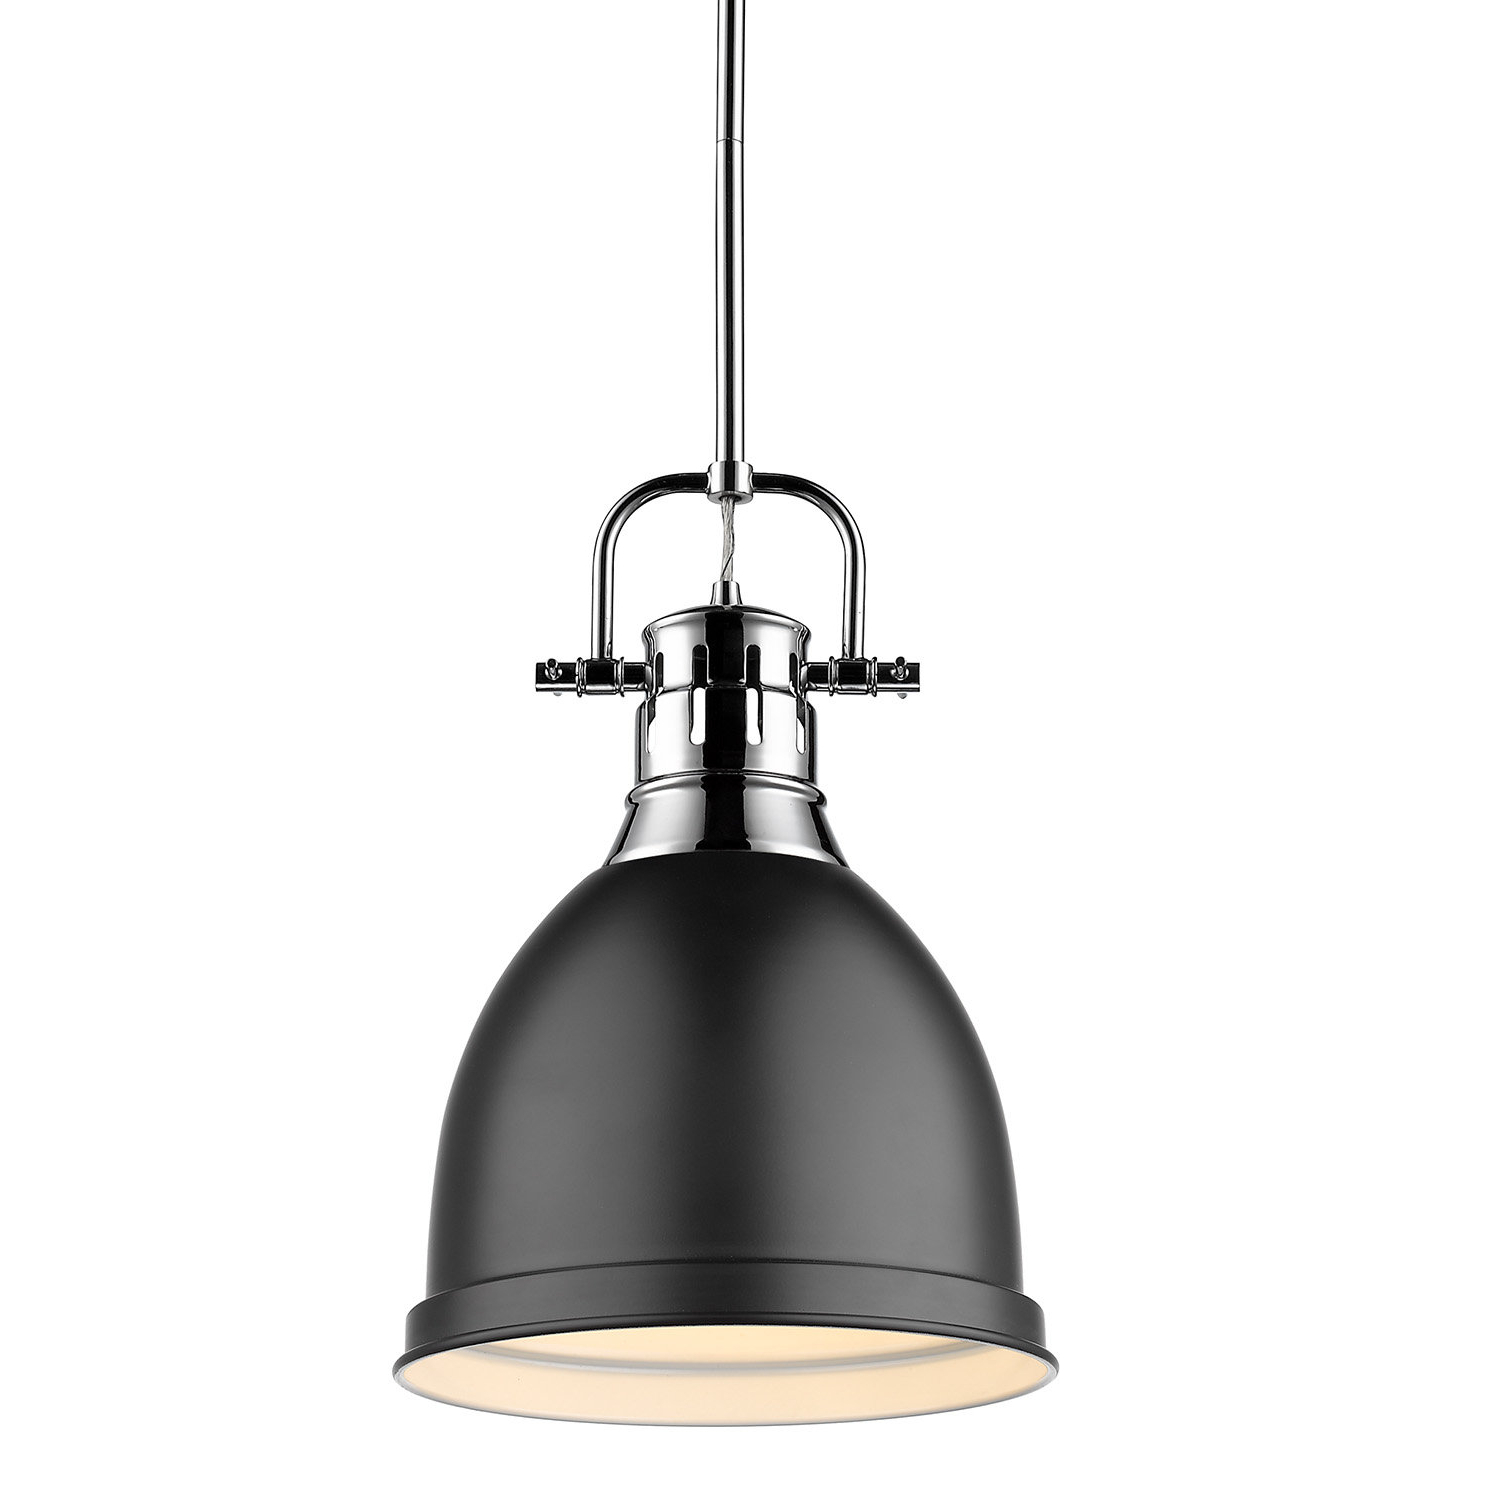 Bodalla 1 Light Single Bell Pendant In Best And Newest Bodalla 1 Light Single Bell Pendants (View 3 of 20)